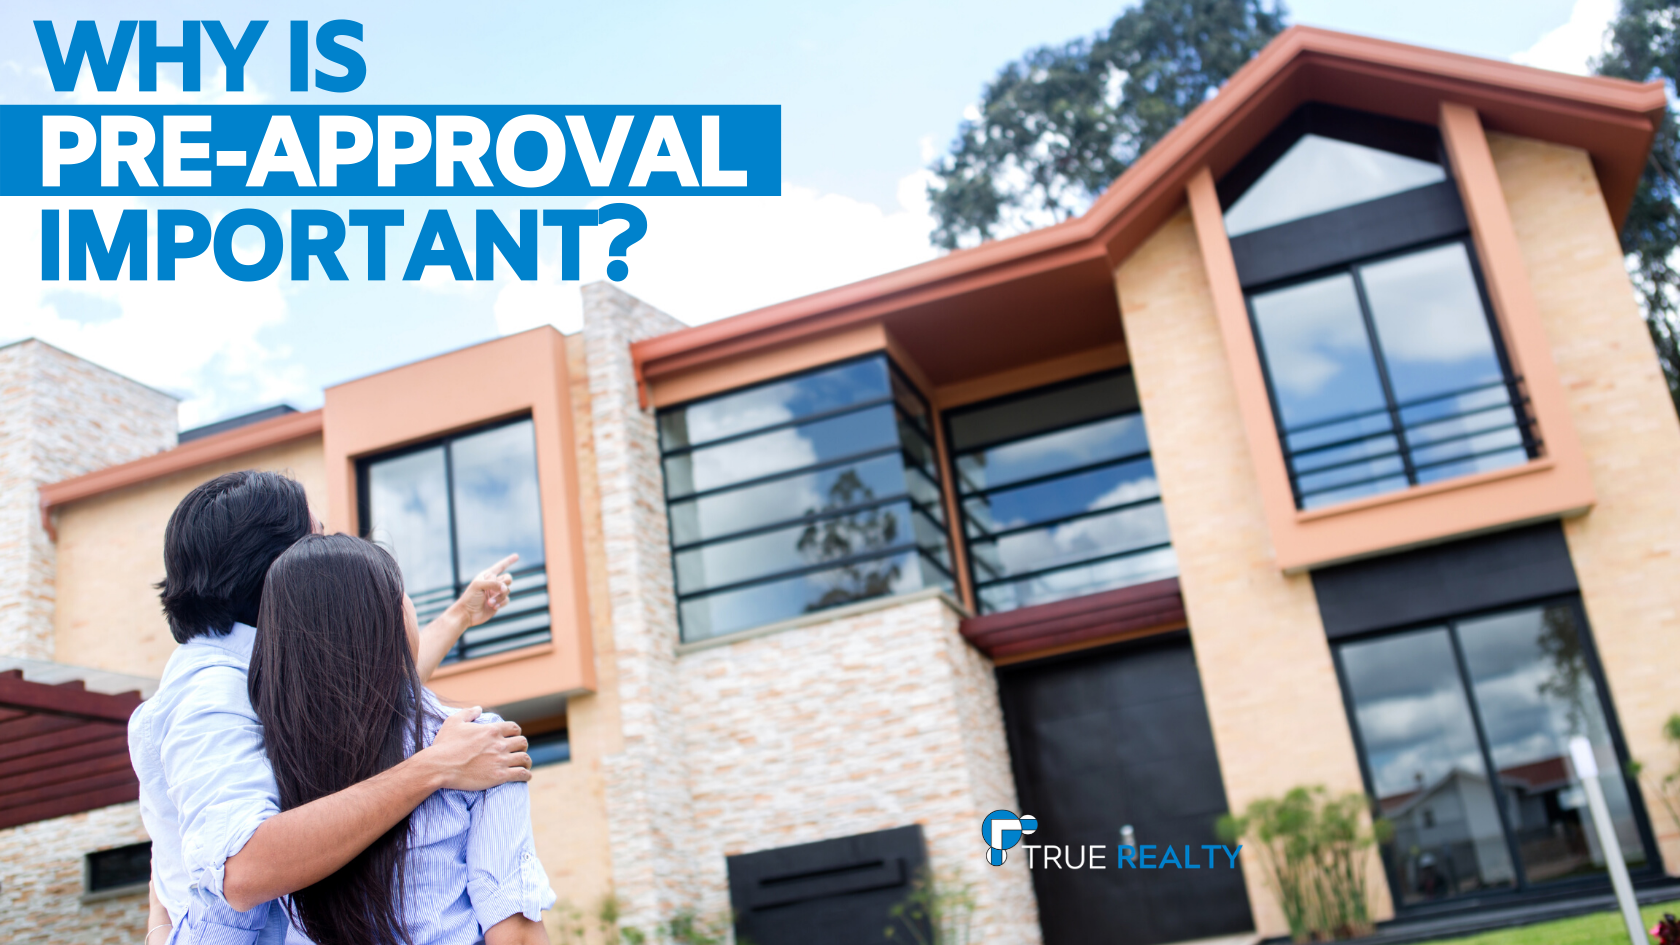 Why is pre-approval in a mortgage important